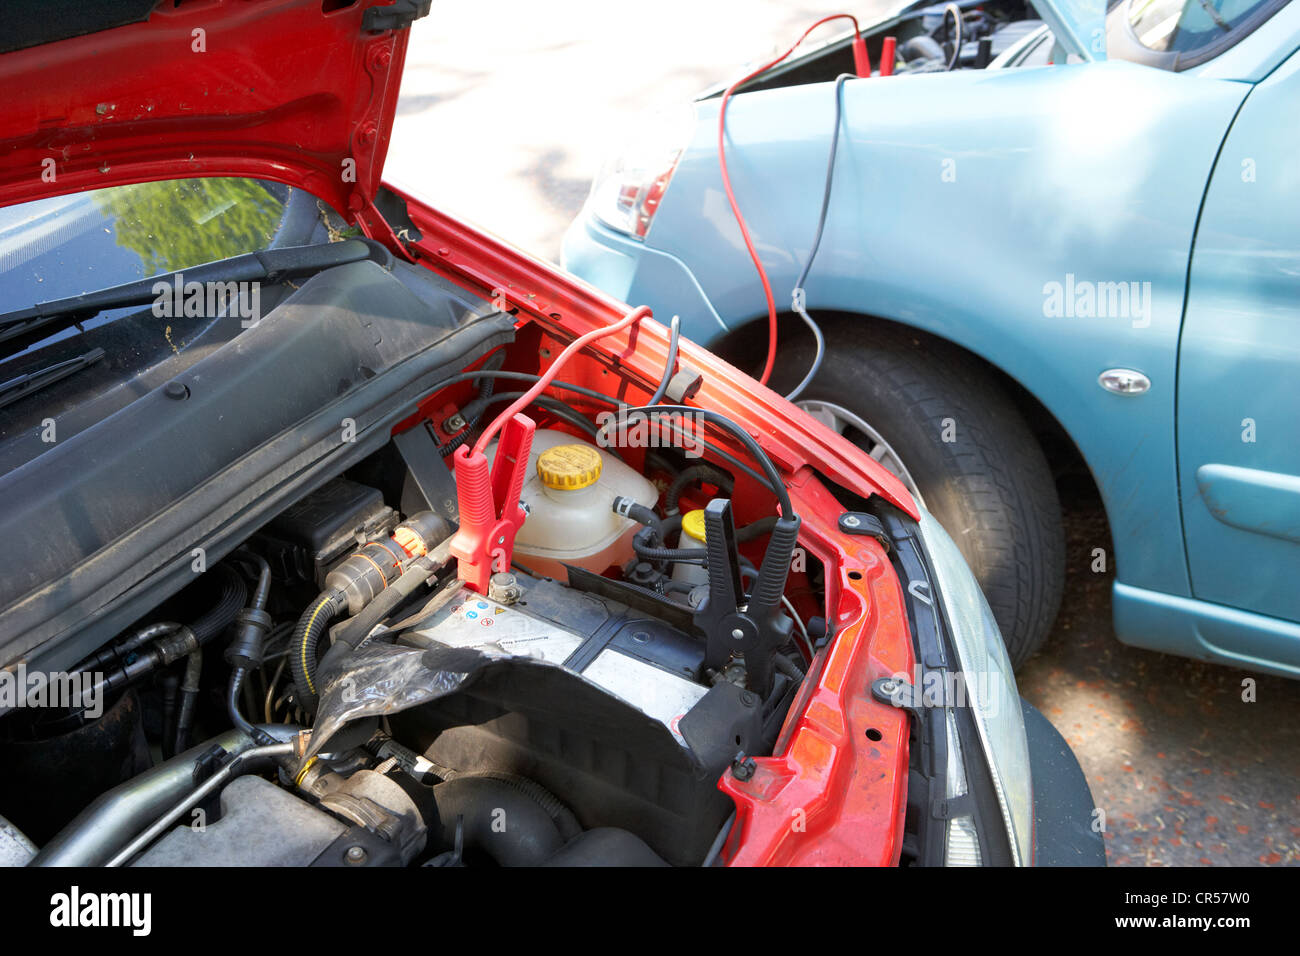 Car Wont Start Stock Photos & Car Wont Start Stock Images